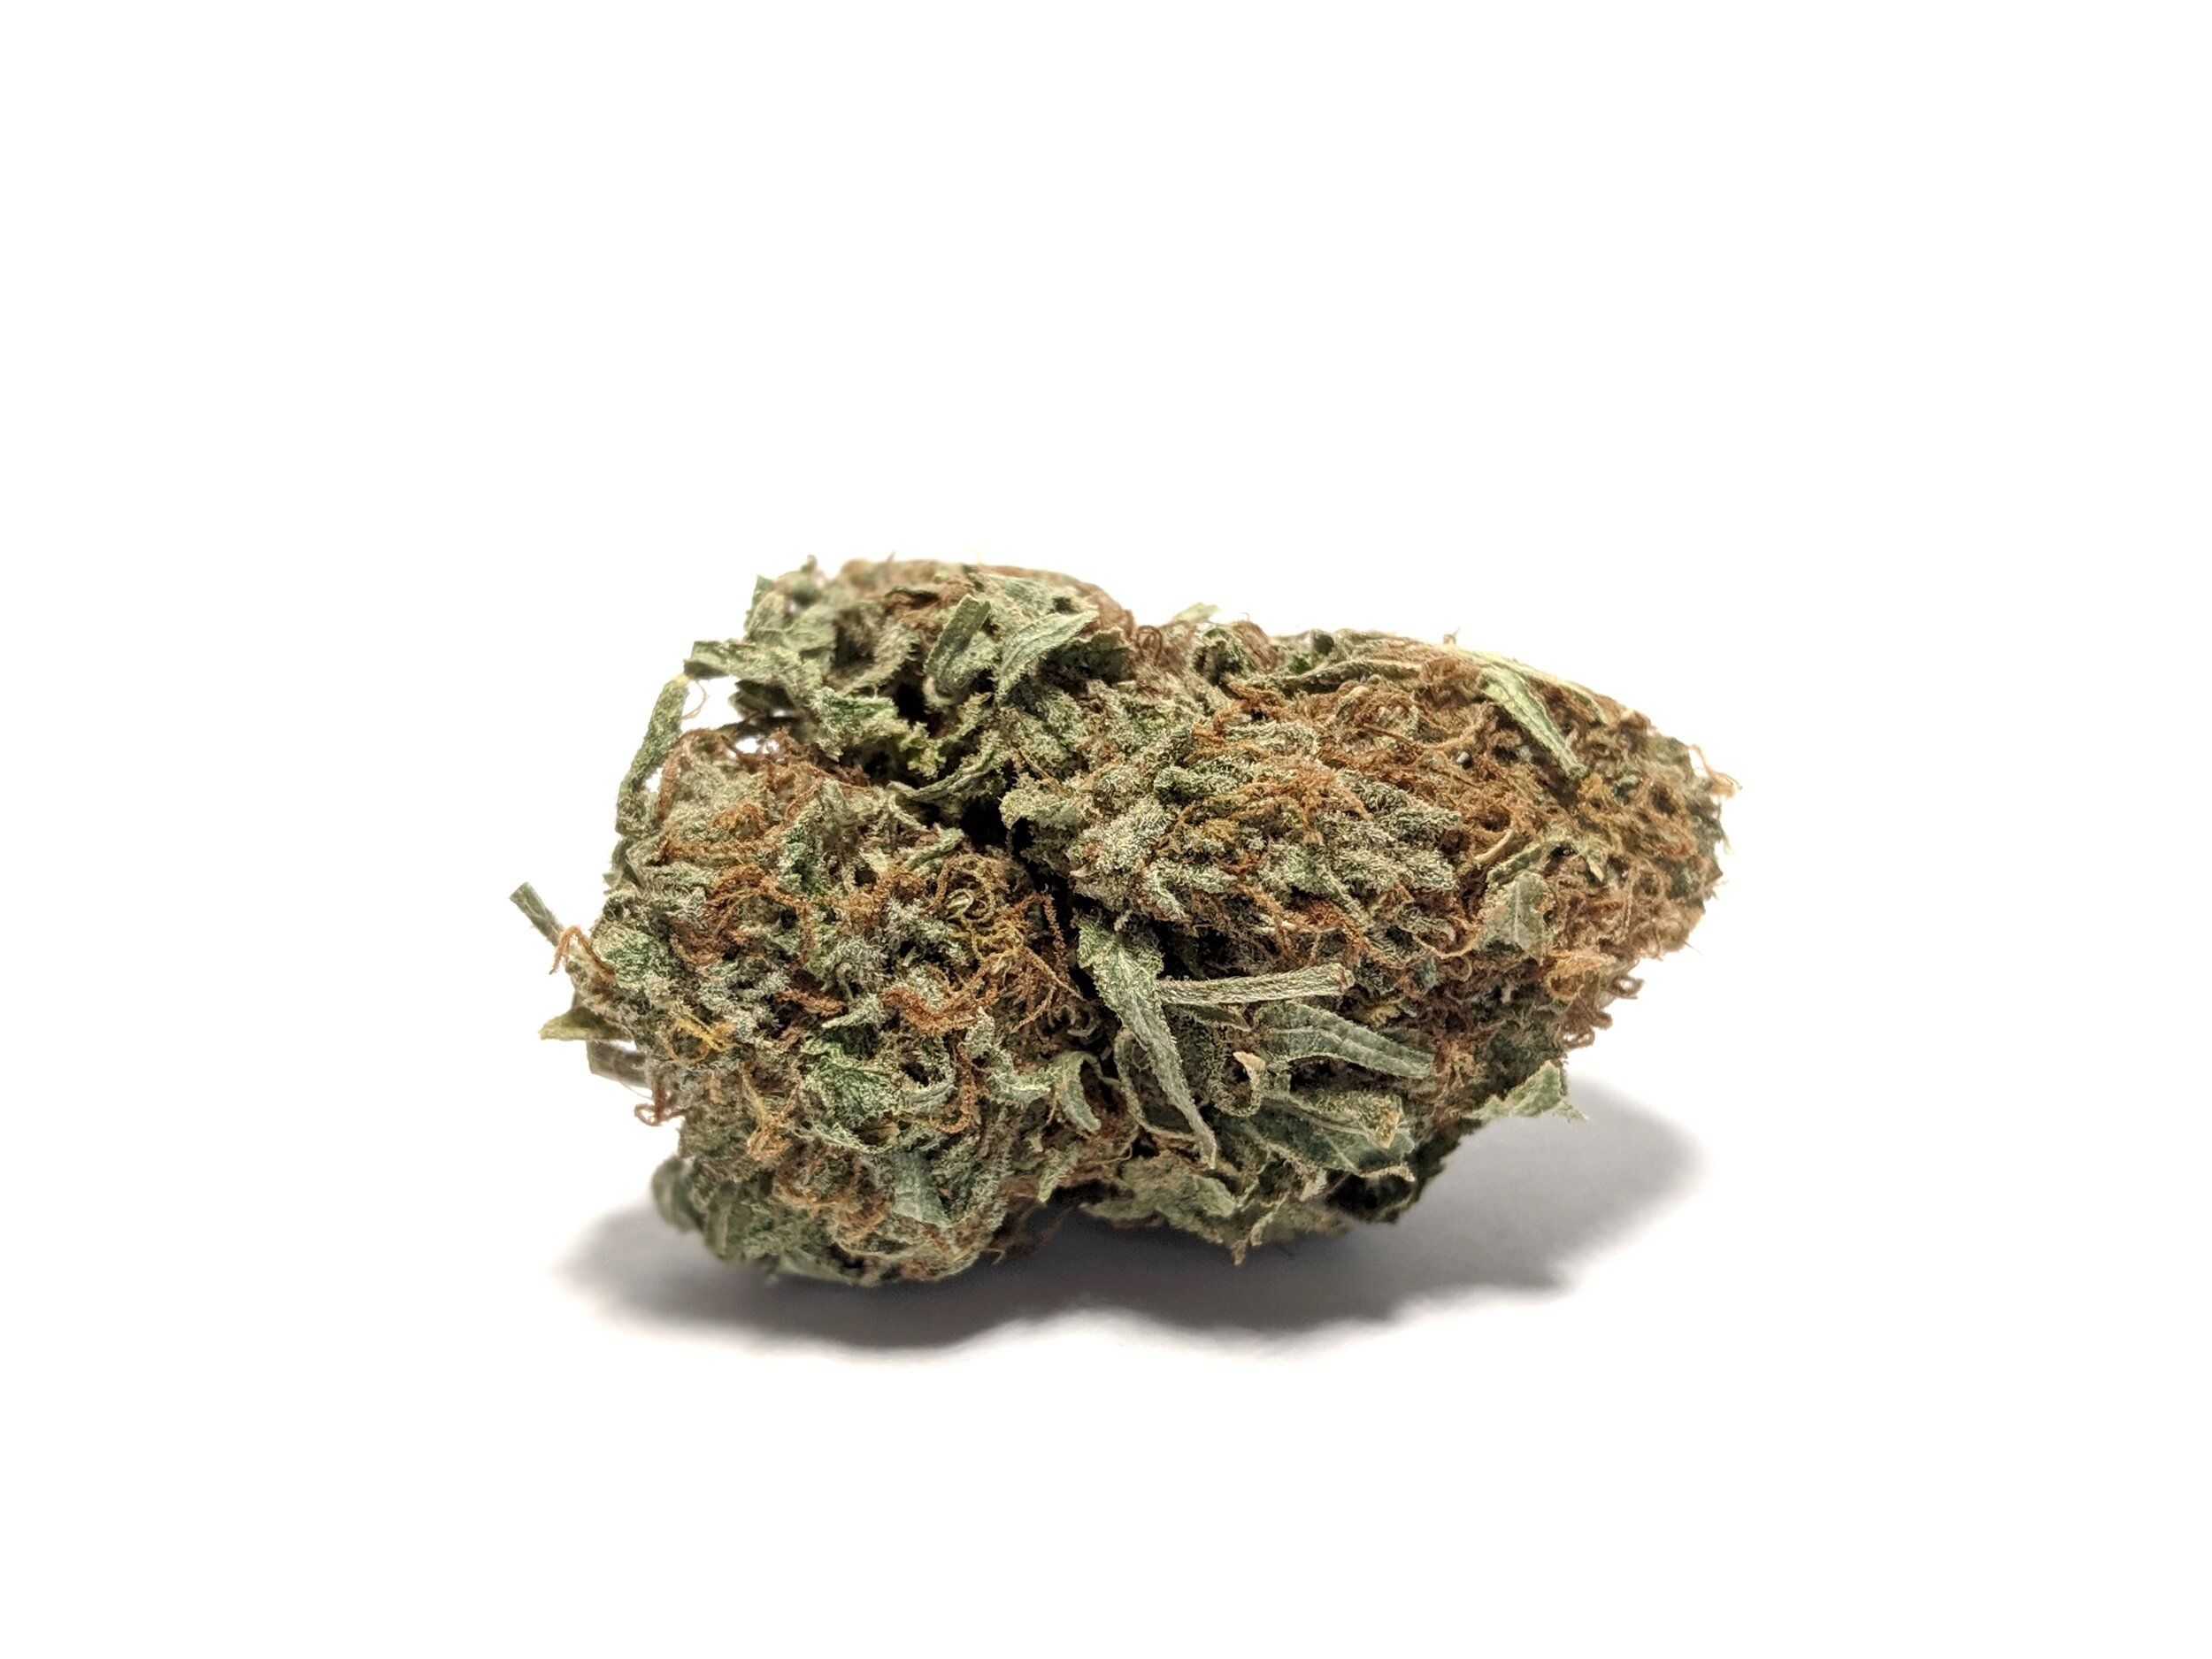 Kosher Kush - Indica    1/4-$50 1/2-$95 OZ-$150   Kosher Kush, offered now in seed form from  DNA Genetics , originated in Los Angeles as a clone-only strain. Winner of  High Times  Cannabis Cup's Best Indica in 2010 and 2011, as well as Best Strain in 2011, Kosher Kush produces staggering levels of THC, with some samples testing over 29%. Known as one of the most odiferous  OG Kush -related strains, it has a unique yet familiar smell reminiscent of rich earth and fruit, and is considered by many to be one of the tastiest smokes around. The high experienced is typical of many heavy indica strains, producing pronounced relaxation and pain relief, with sleep often following close behind.